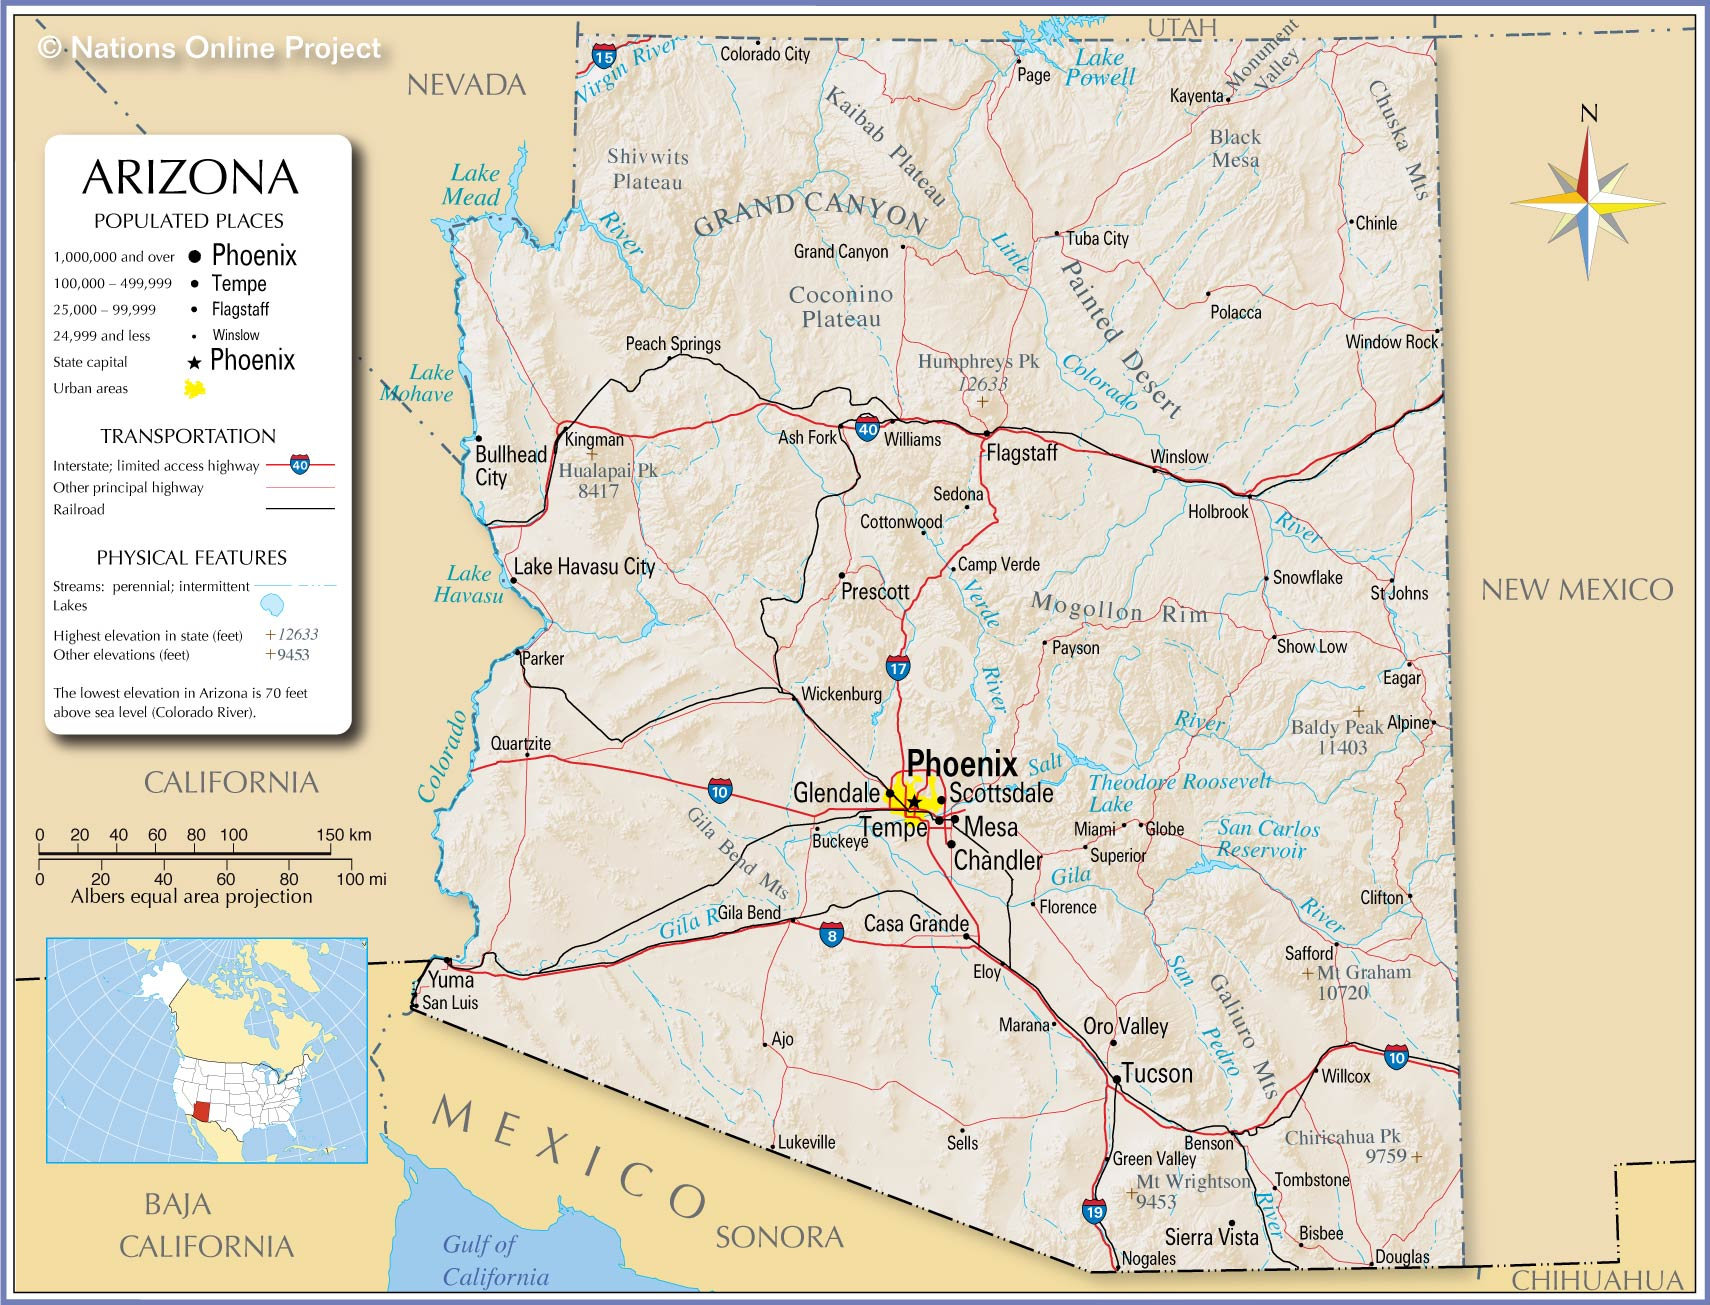 Reference Map Of Arizona USA Nations Online Project - Arizona map of usa